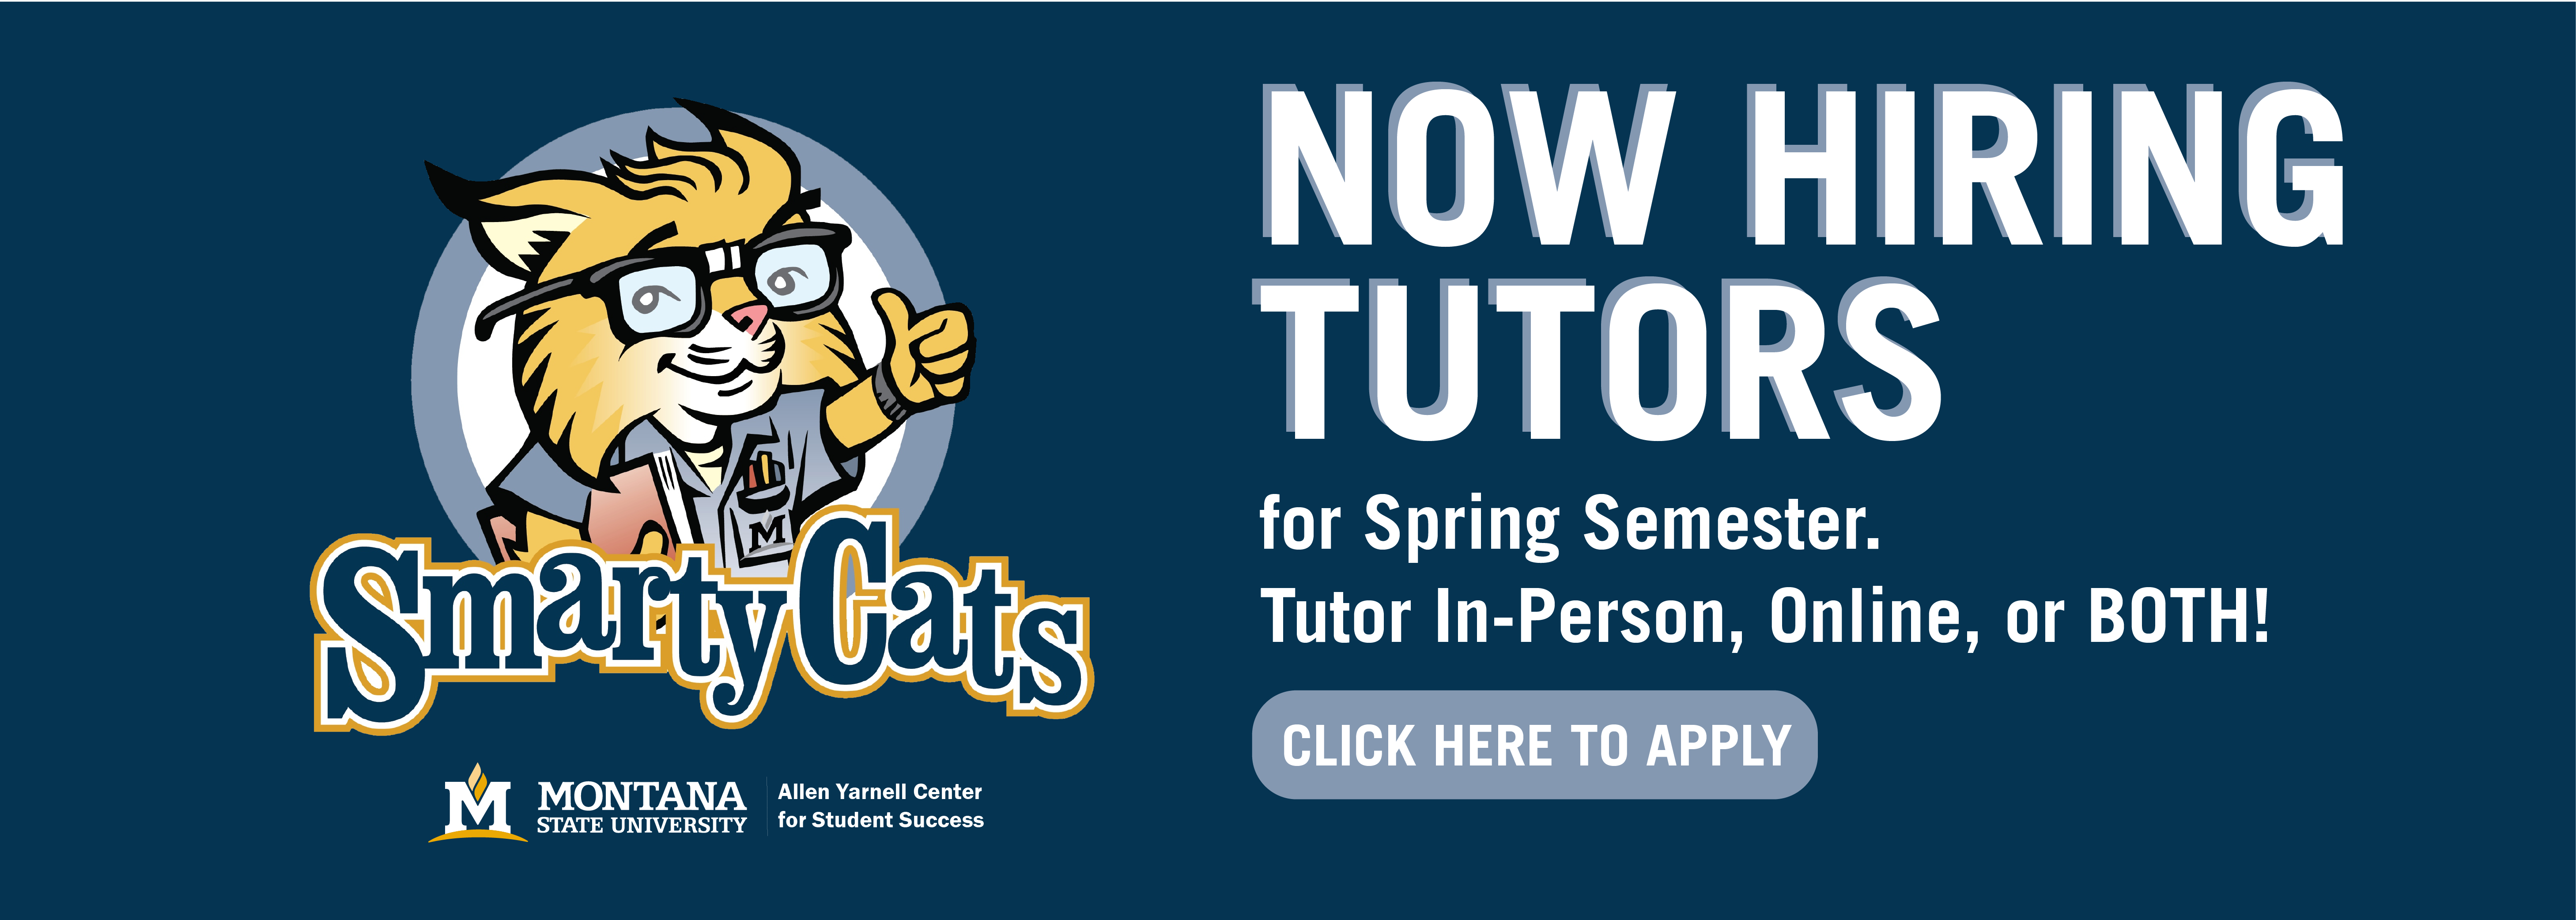 Now Hiring Tutors for spring semester. Tutor in person, online, or both.